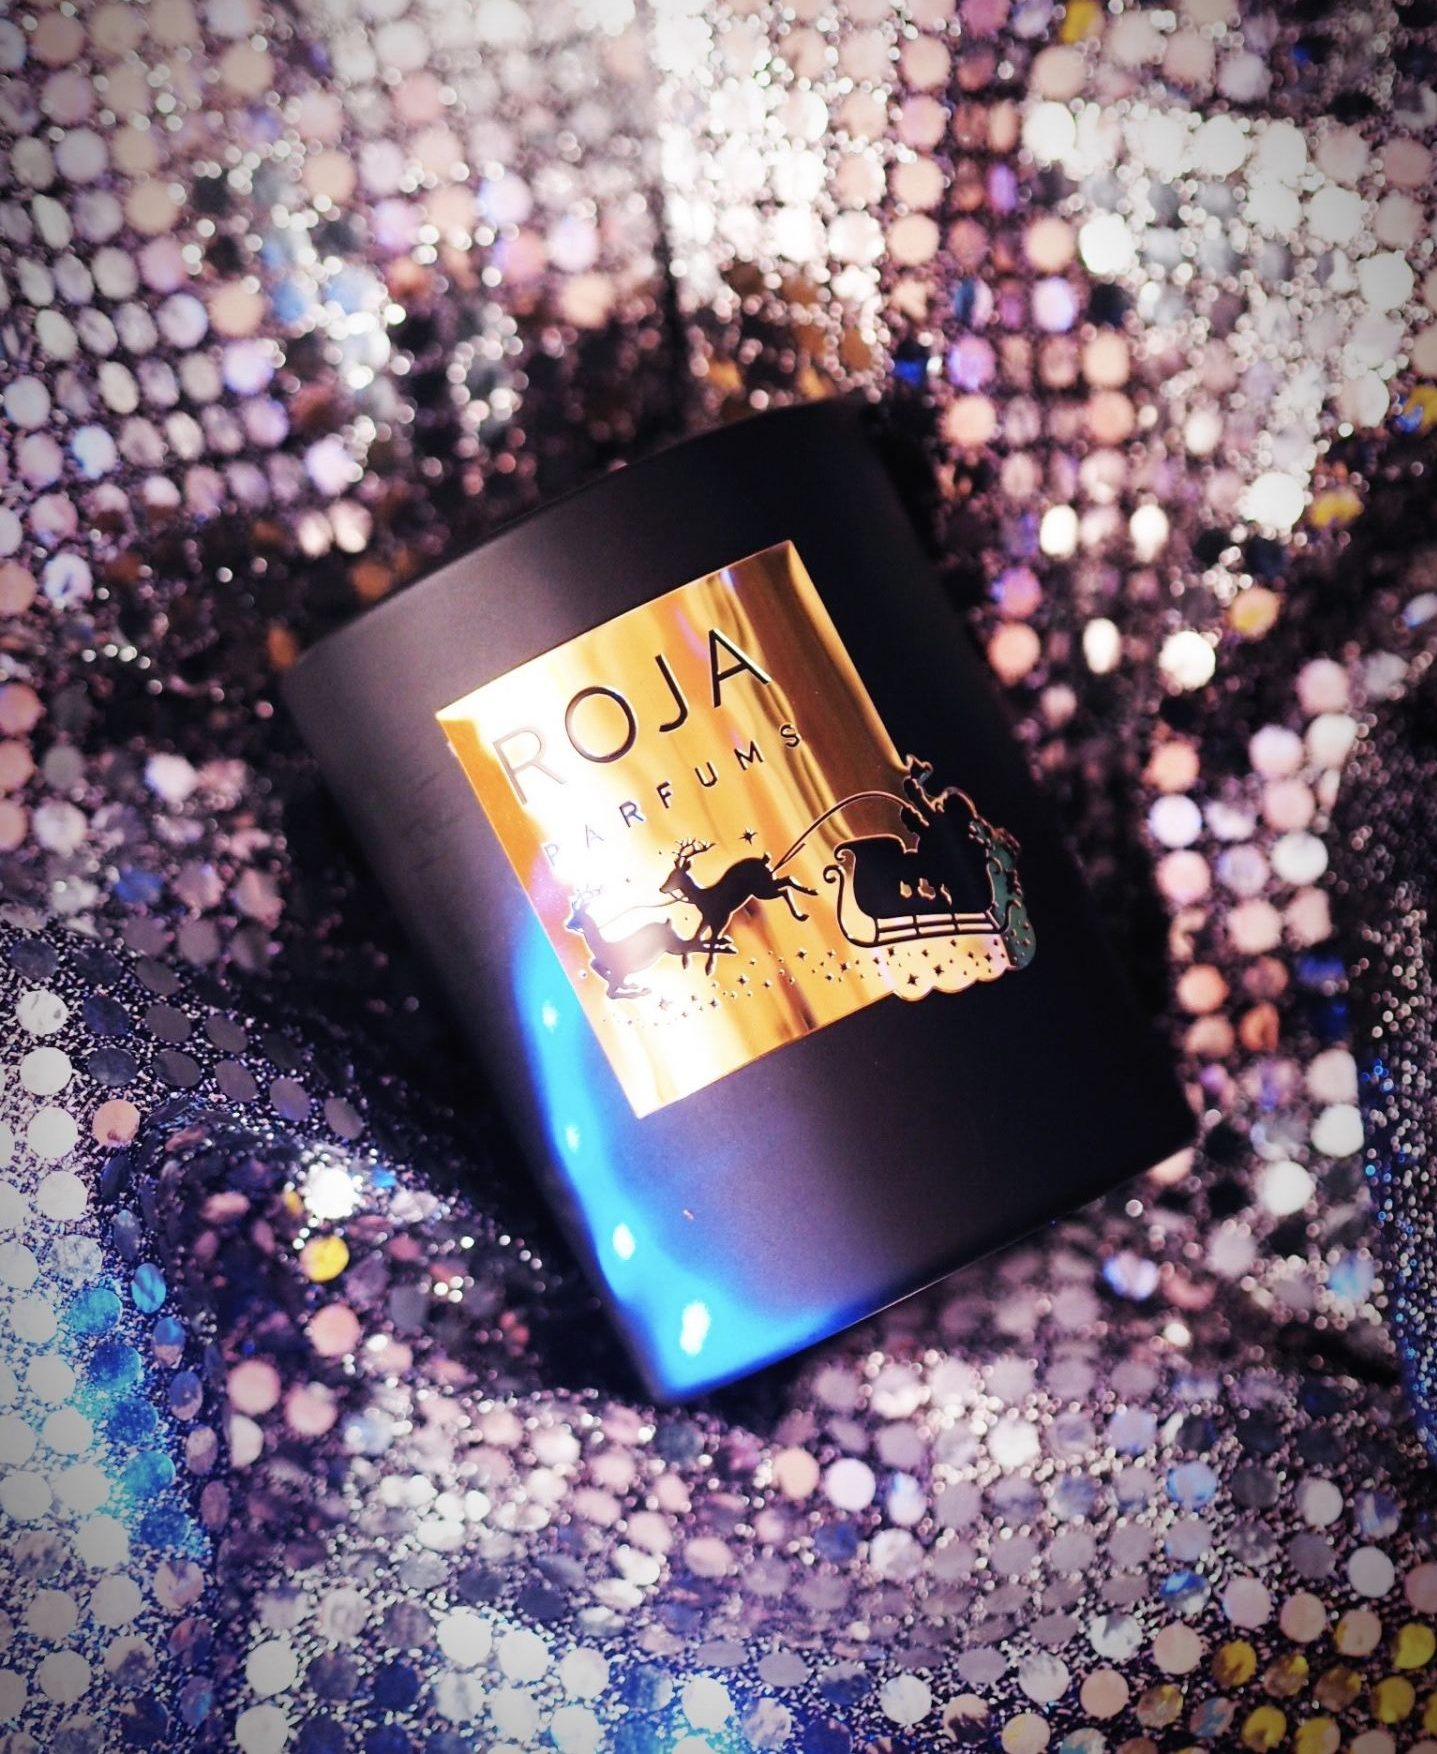 Roja Parfums 'The Essence Of Christmas' Candle